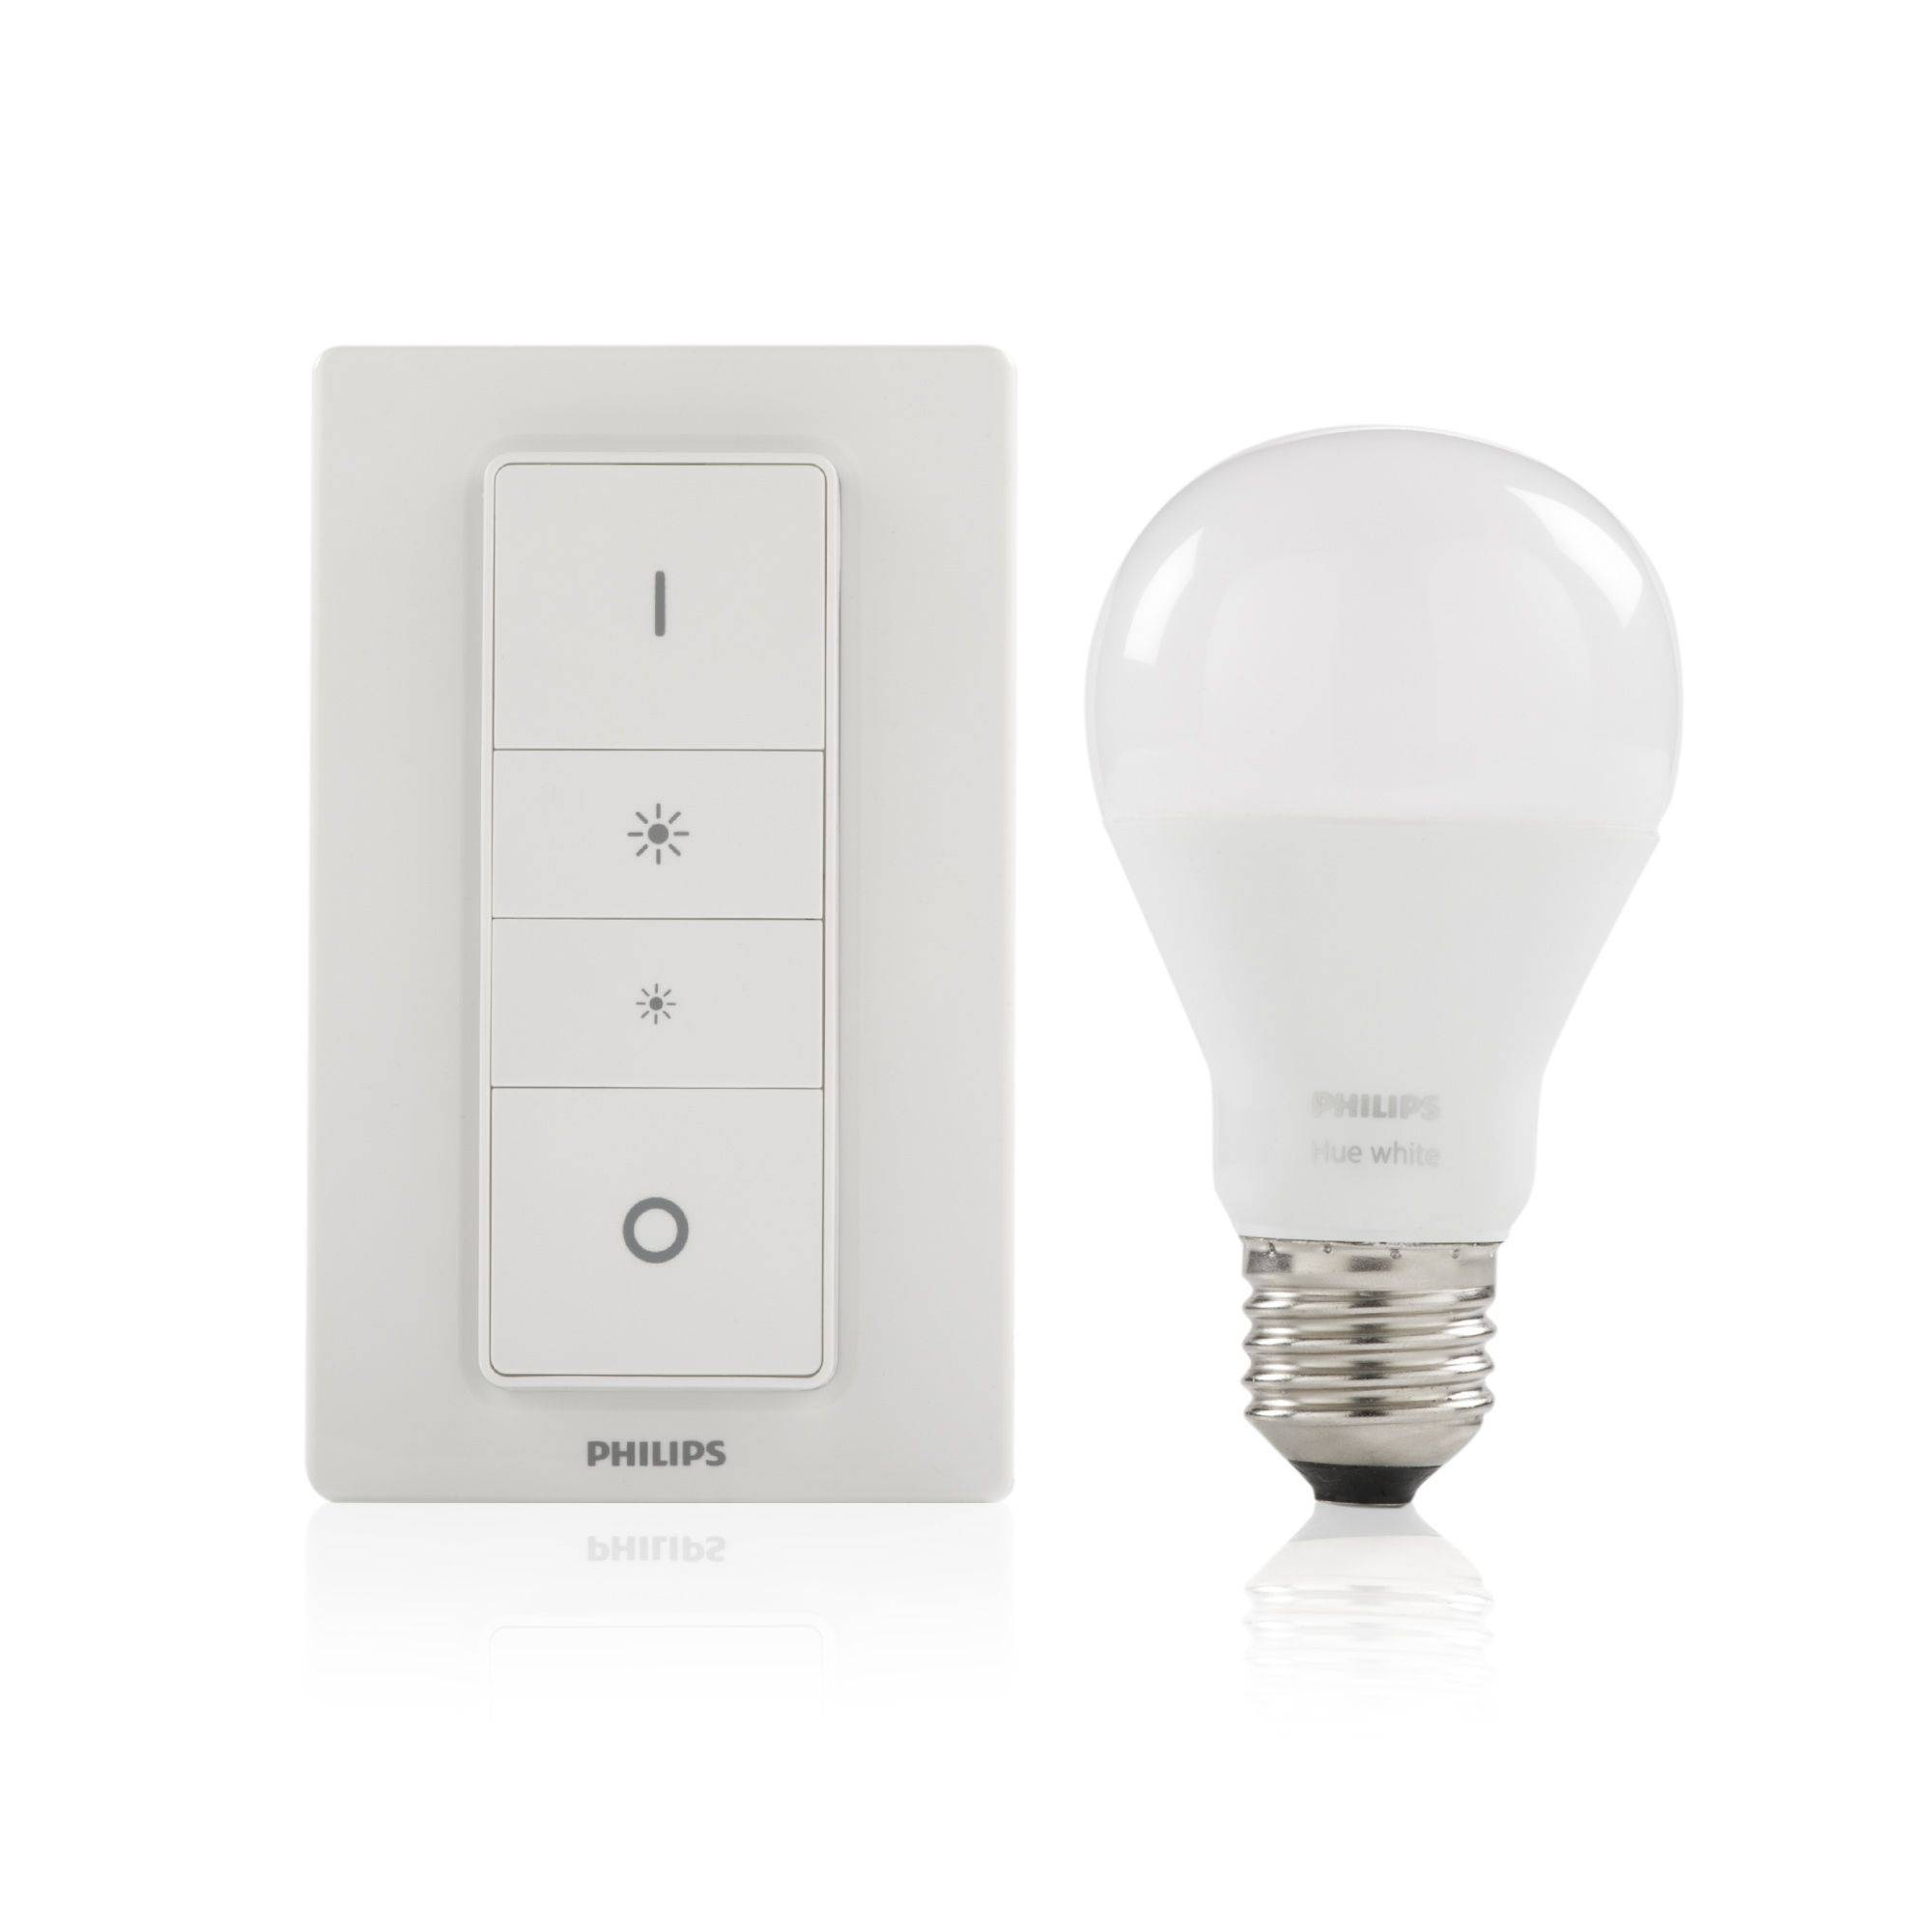 Philips Hue Dimming Kit, lampadina LED dimmerabile con telecomando